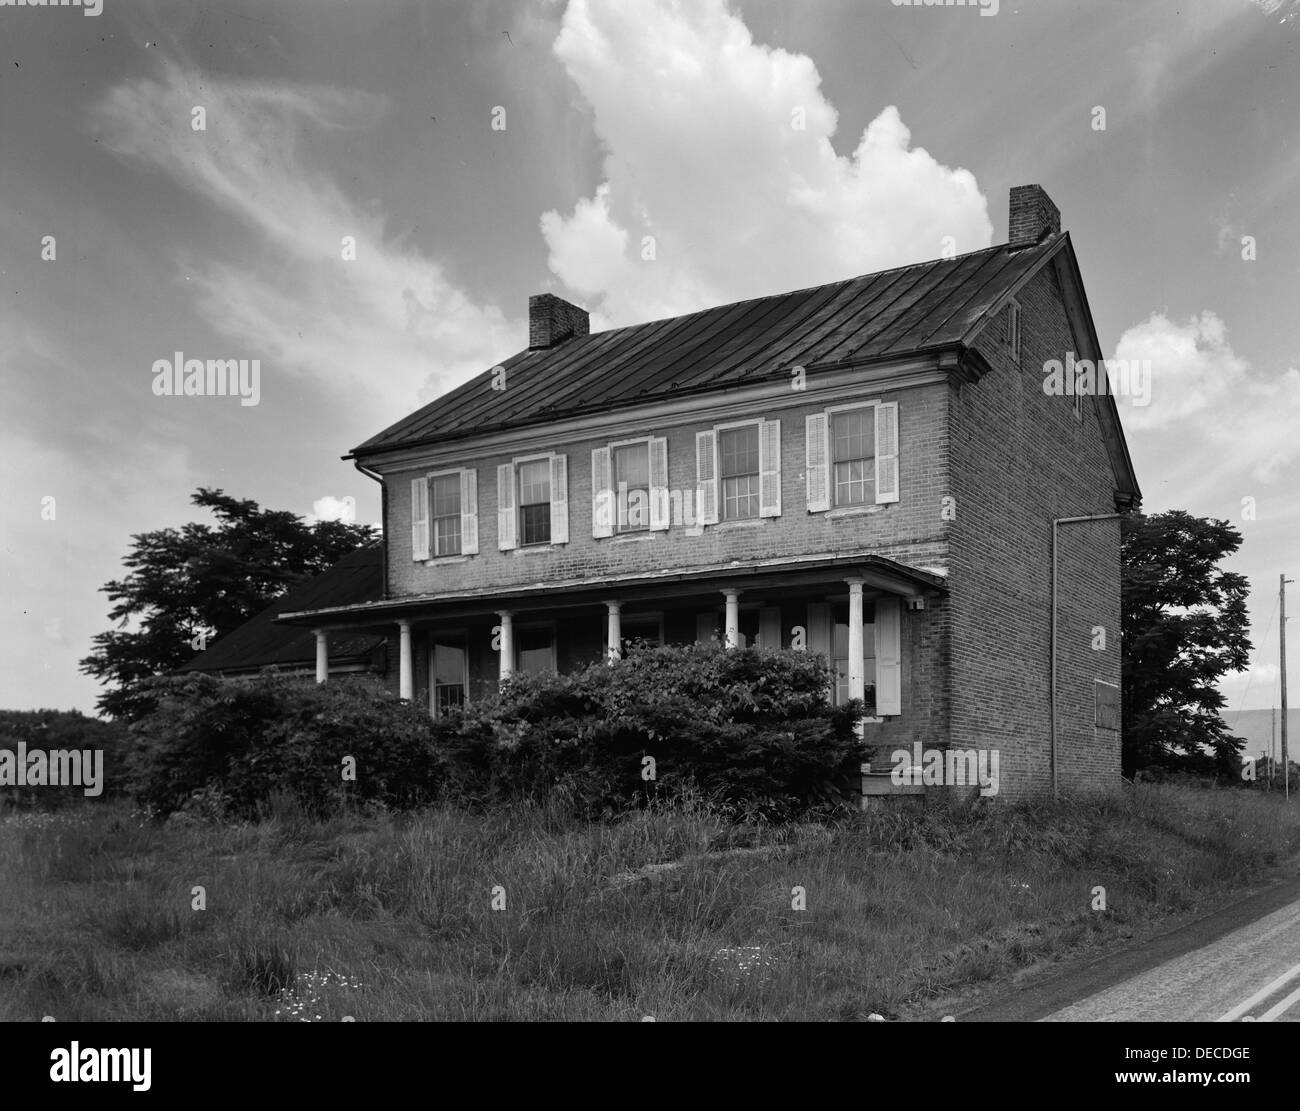 Sterrett-Hassinger House, also known as David Sterrett House, was a historic home located at Upper Mifflin Township in Cumberland County, Pennsylvania. It was built about 1789-1791, and modified between about 1830-1835 and 1850. The house was demolished a - Stock Image